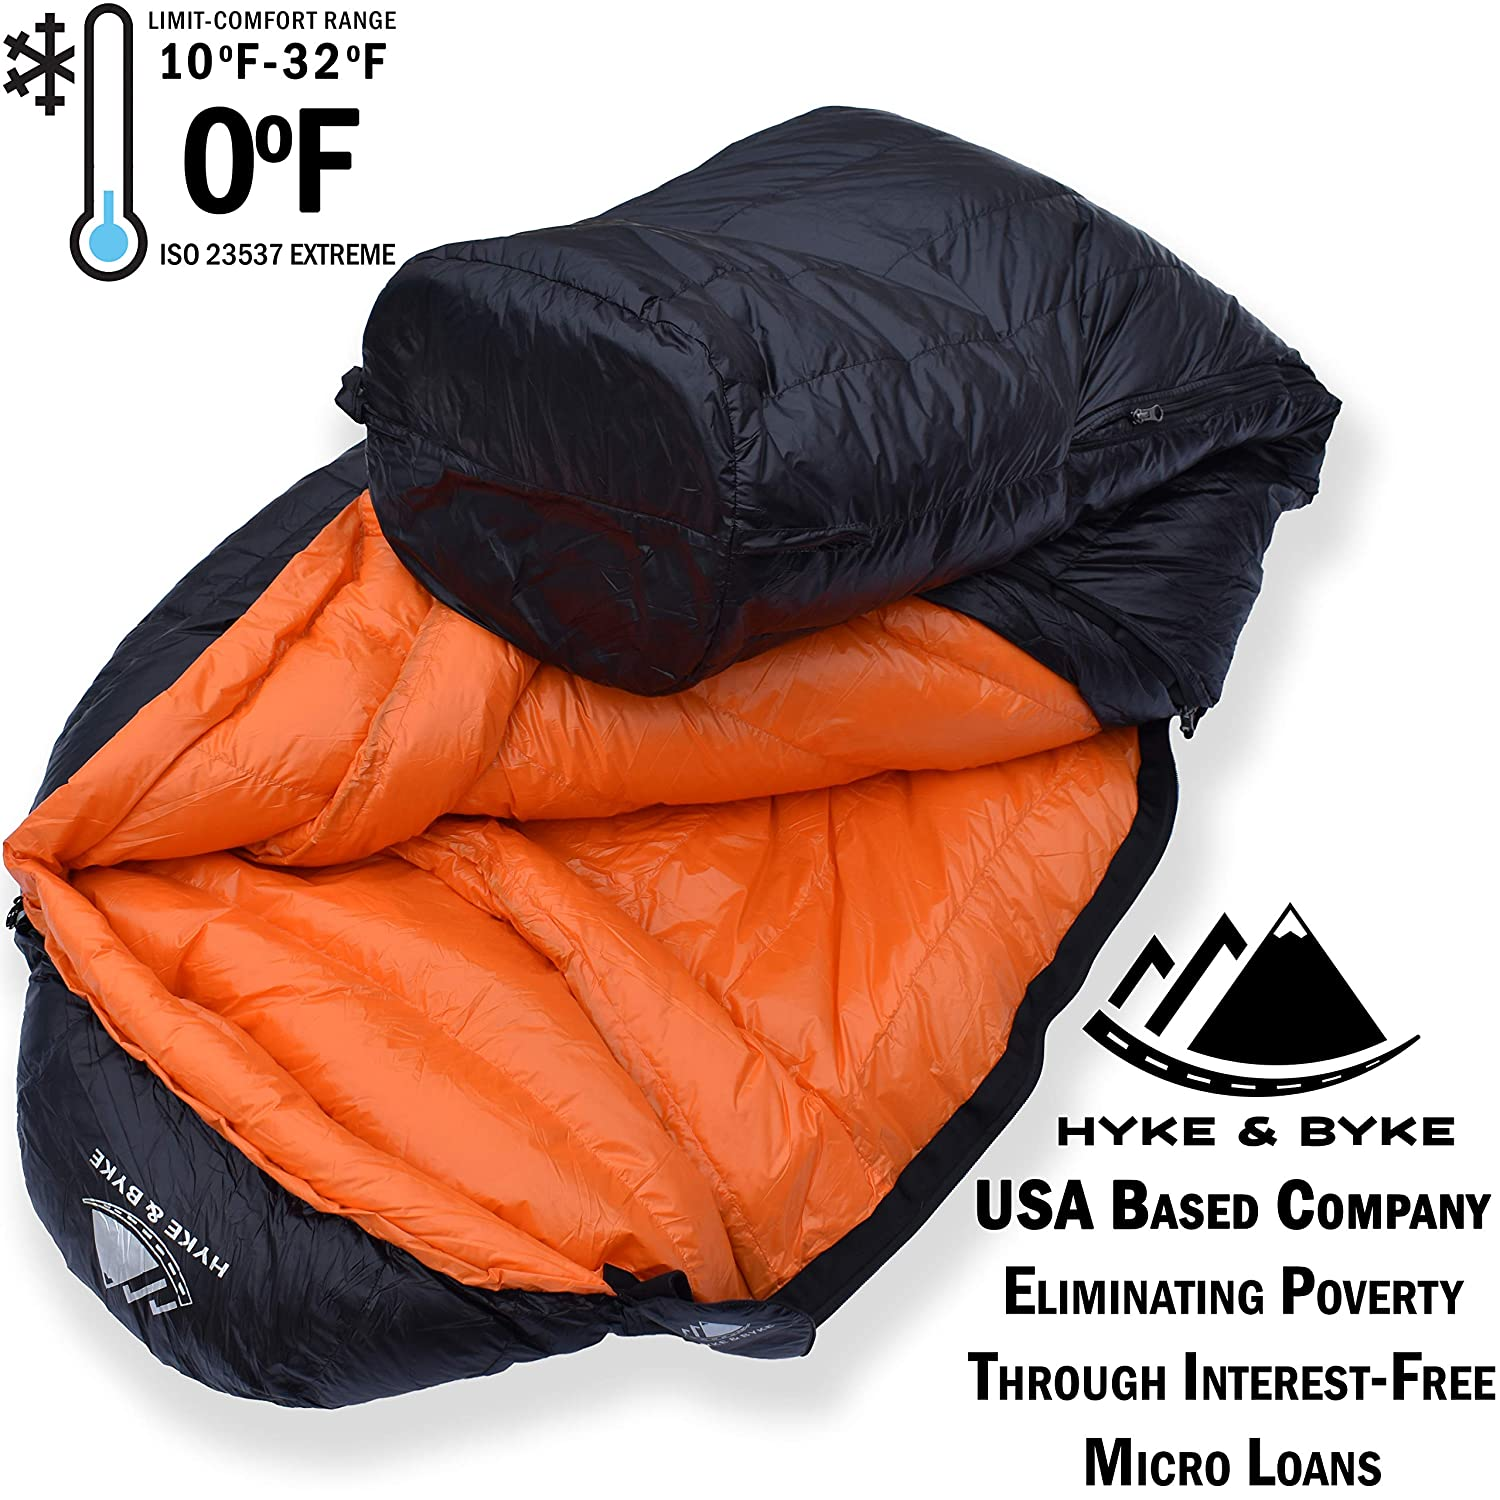 Hyke Byke Eolus 0 Degree F 800 Fill Power Hydrophobic Goose Down Sleeping Bag with ClusterLoft Base – Ultra Lightweight 4 Season Men s and Women s Mummy Bag Designed for Backpacking